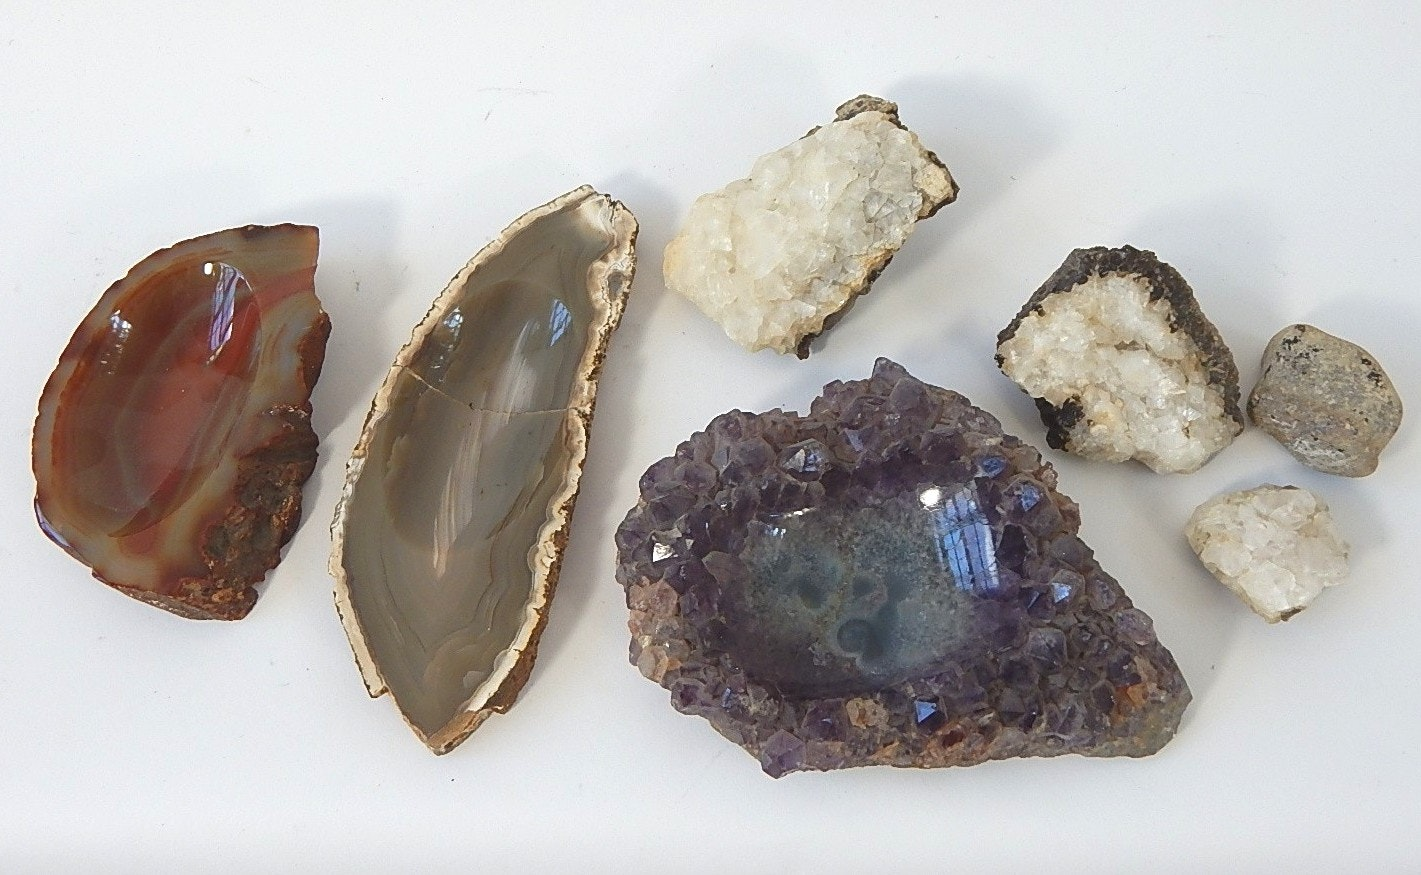 Petrified Wood and Mineral Specimens